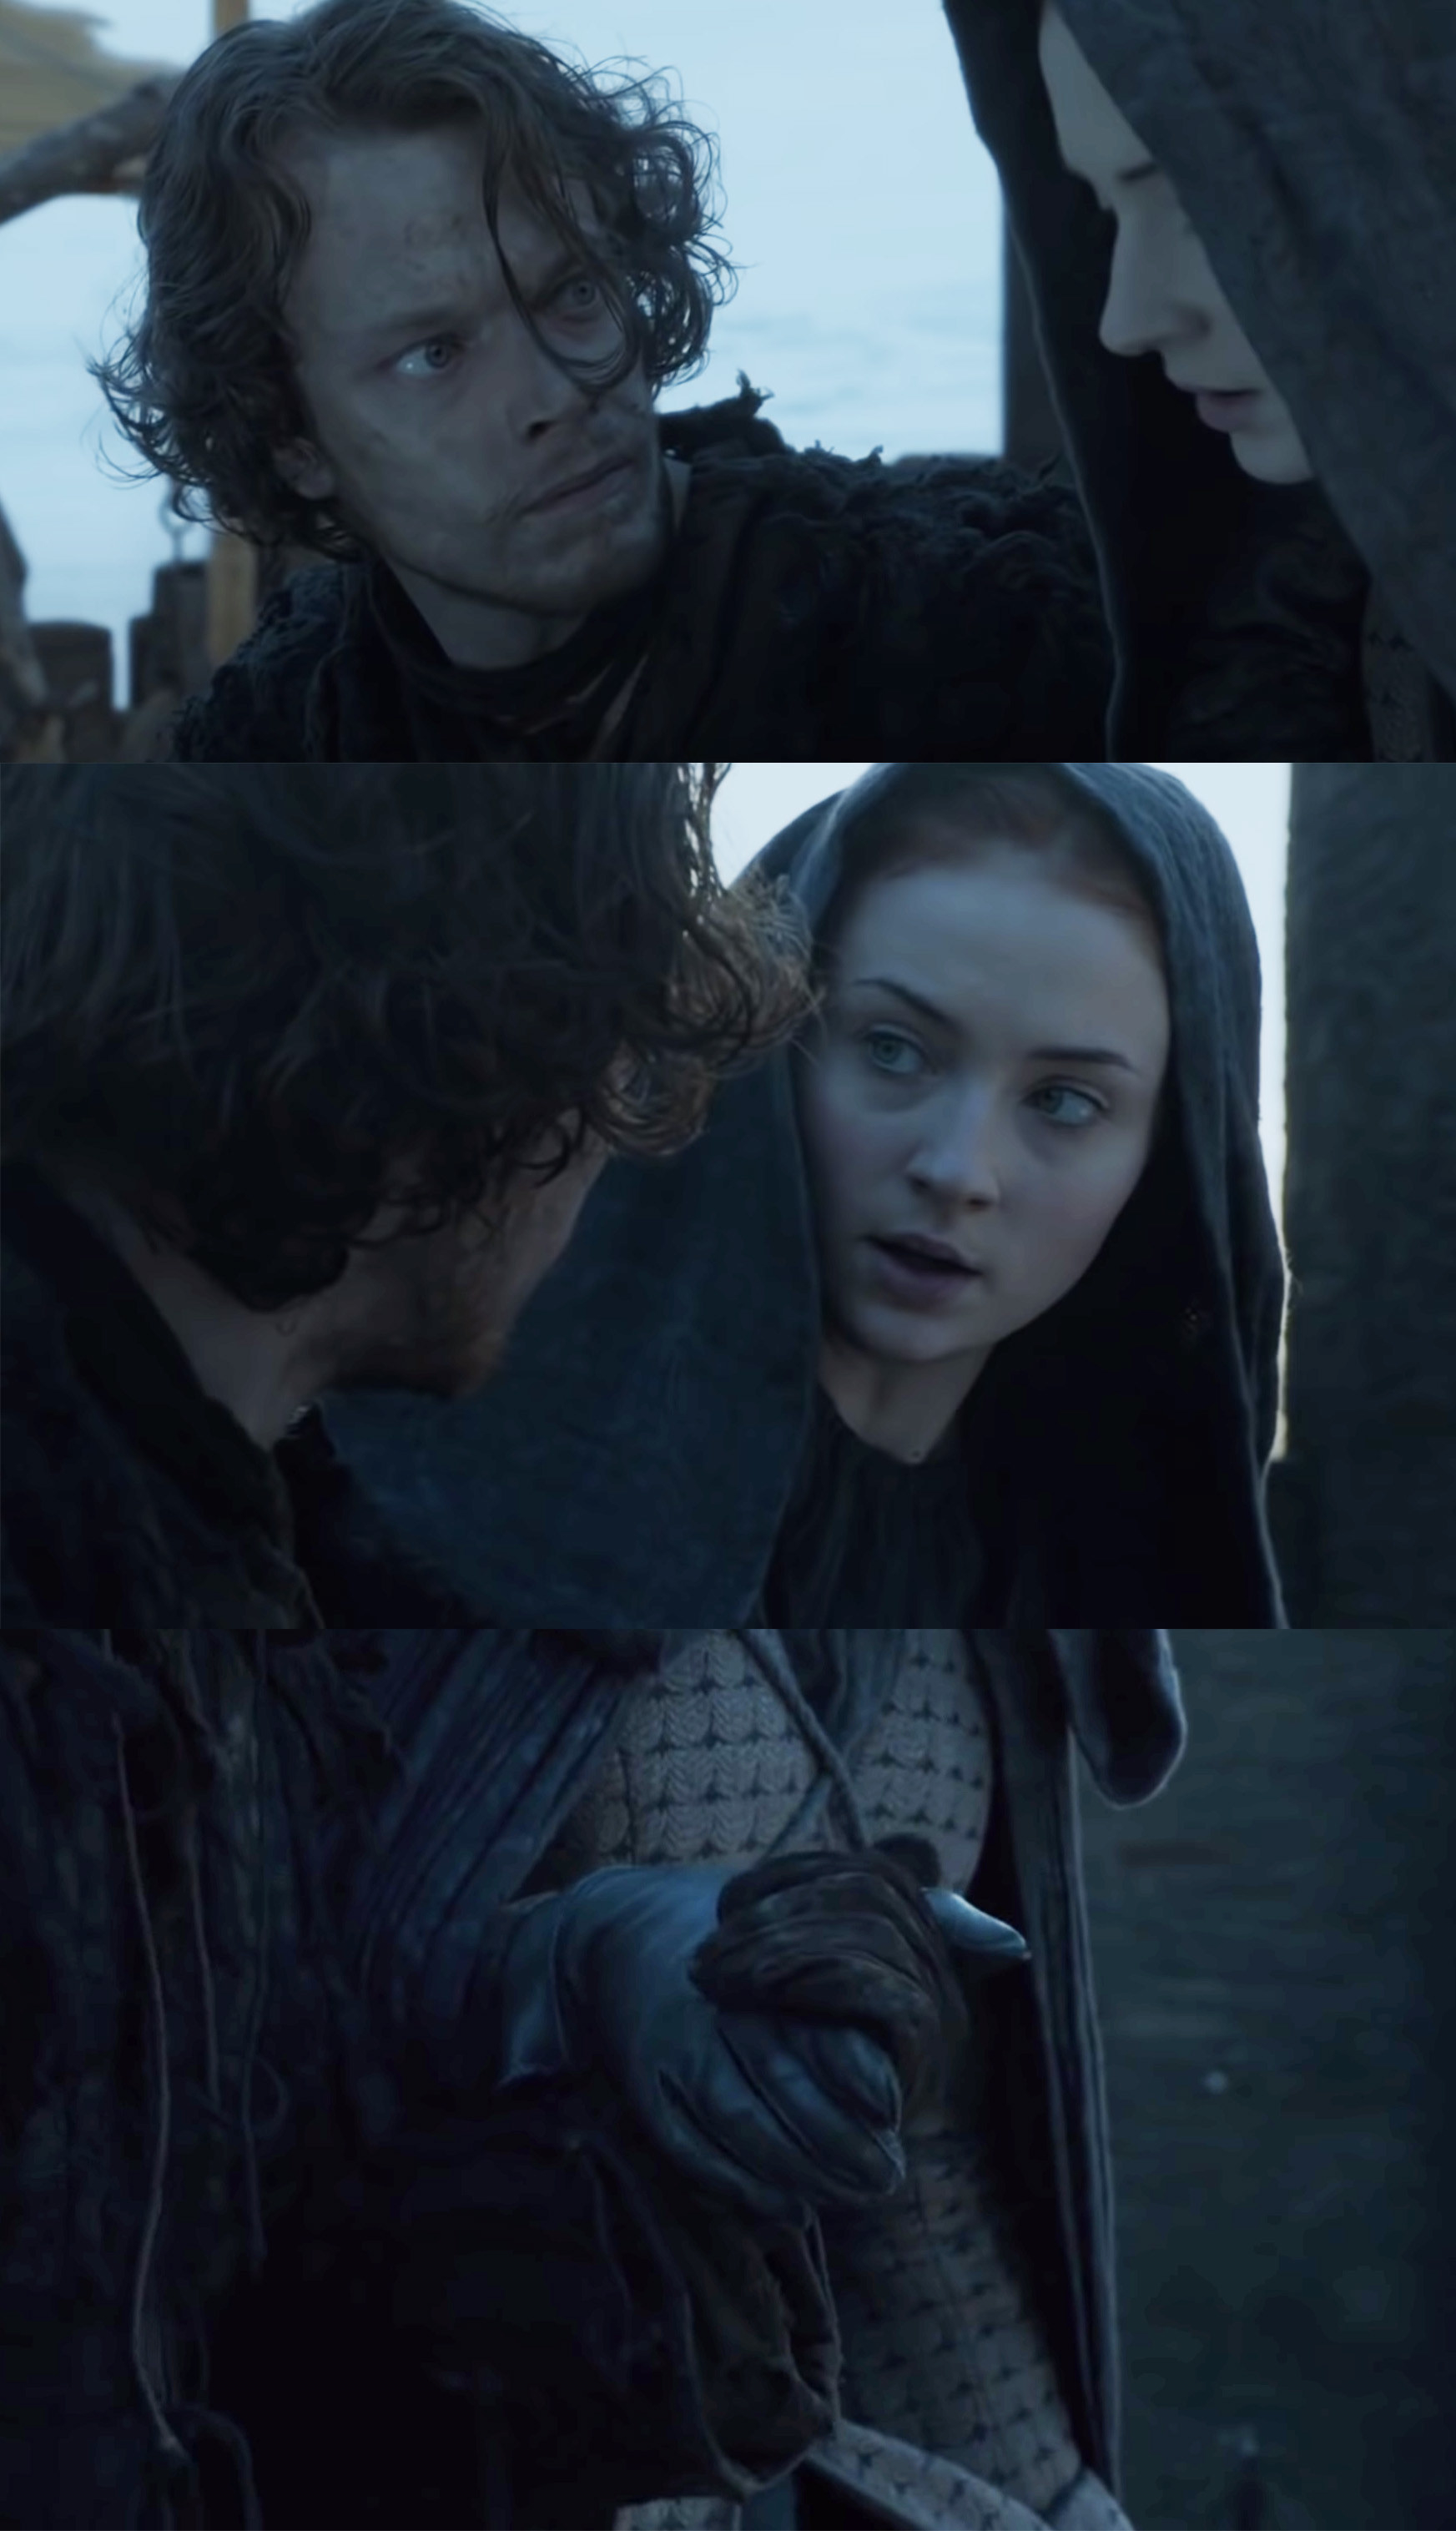 Theon taking Sansa's hand as they getting ready to jump off the side of the castle together.